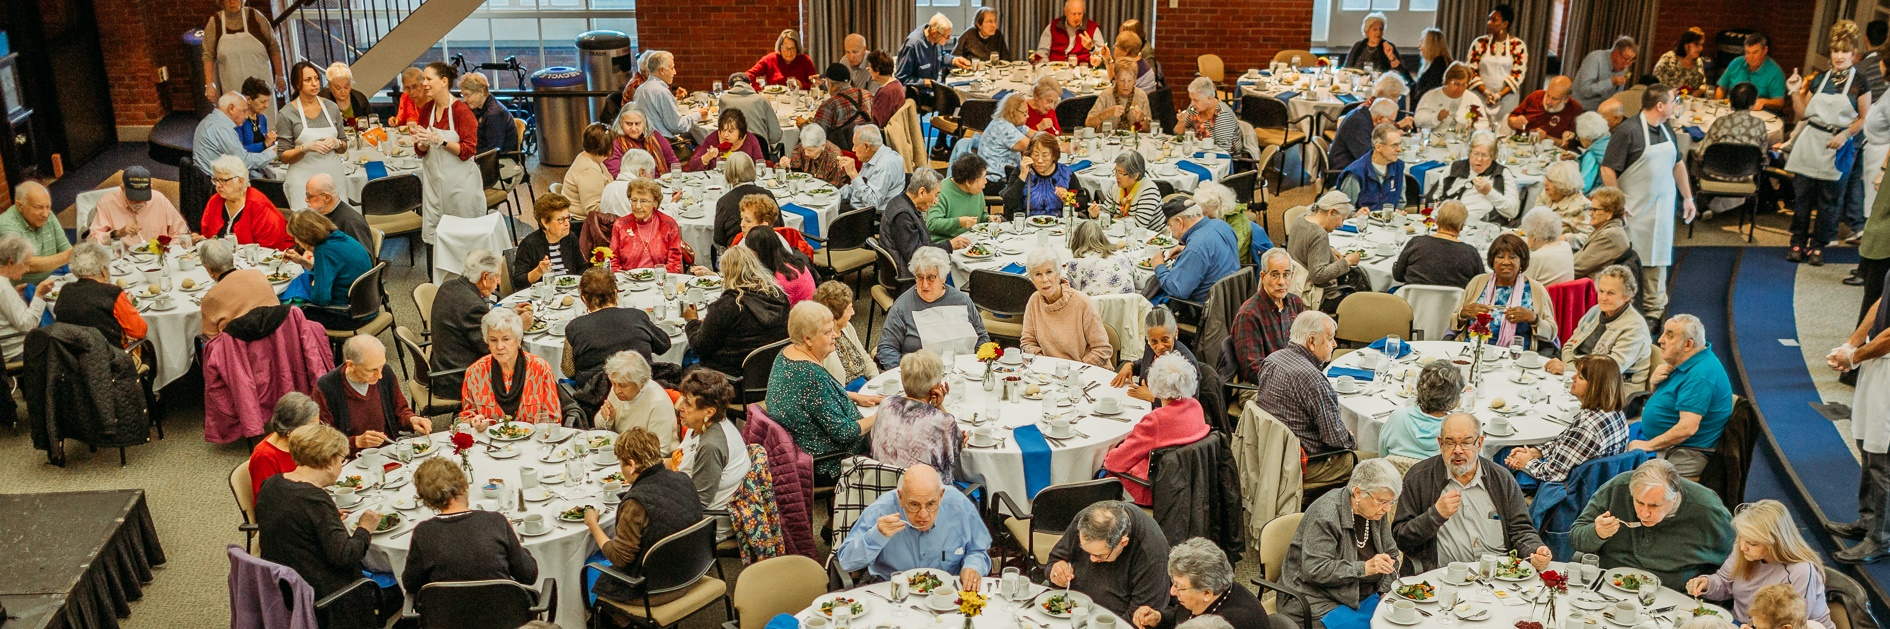 Thanksgiving luncheon for senior citizens at Bentley University